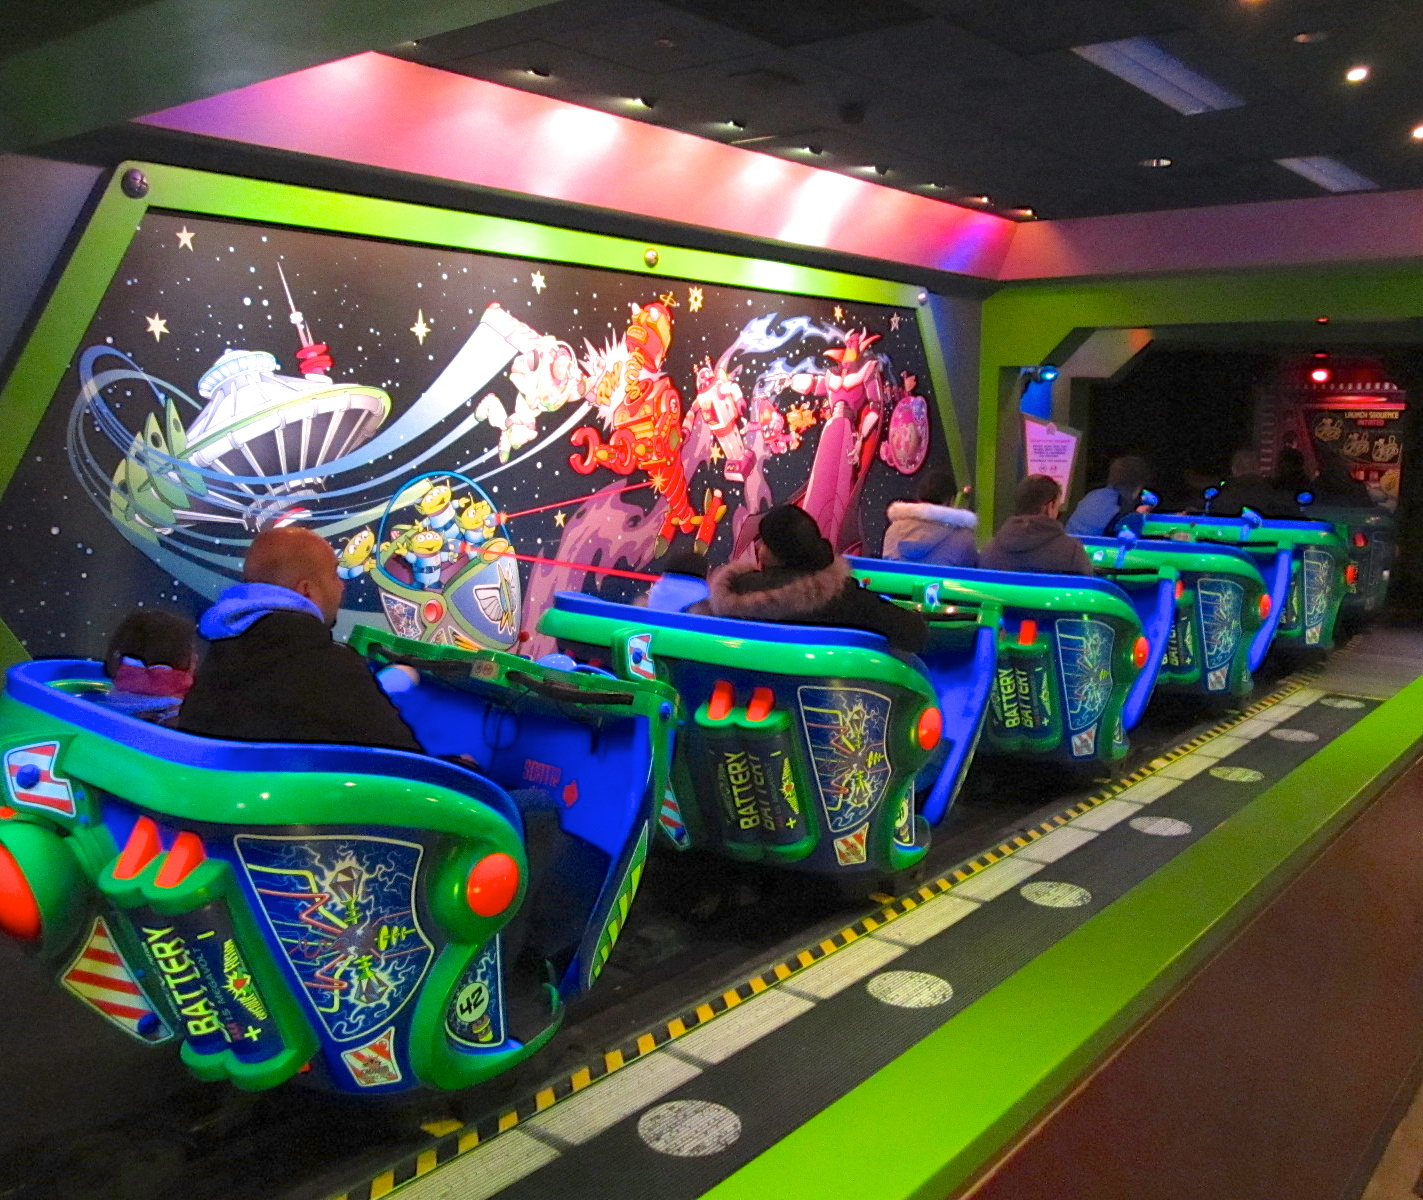 la-station-dembarquement-de-lattraction-buzz-lightyear-laser-blast-c3a0-disneyland-paris.jpg